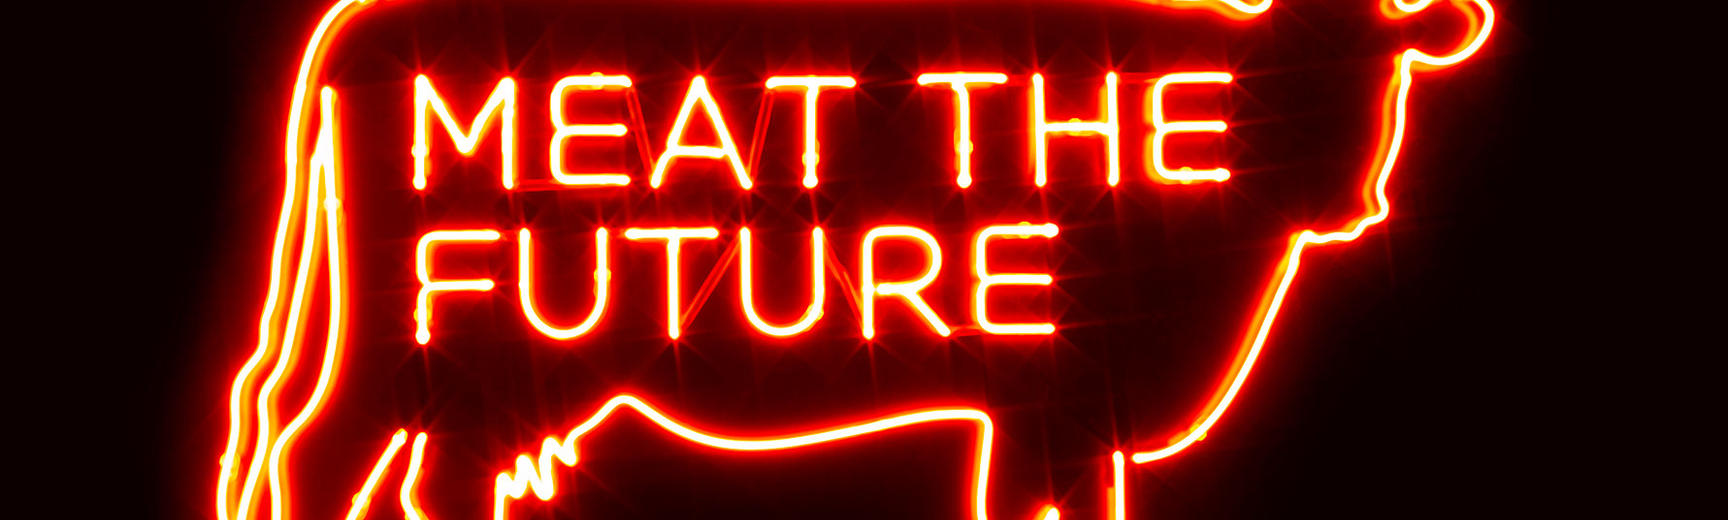 Neon sign of cow with Meat the Future